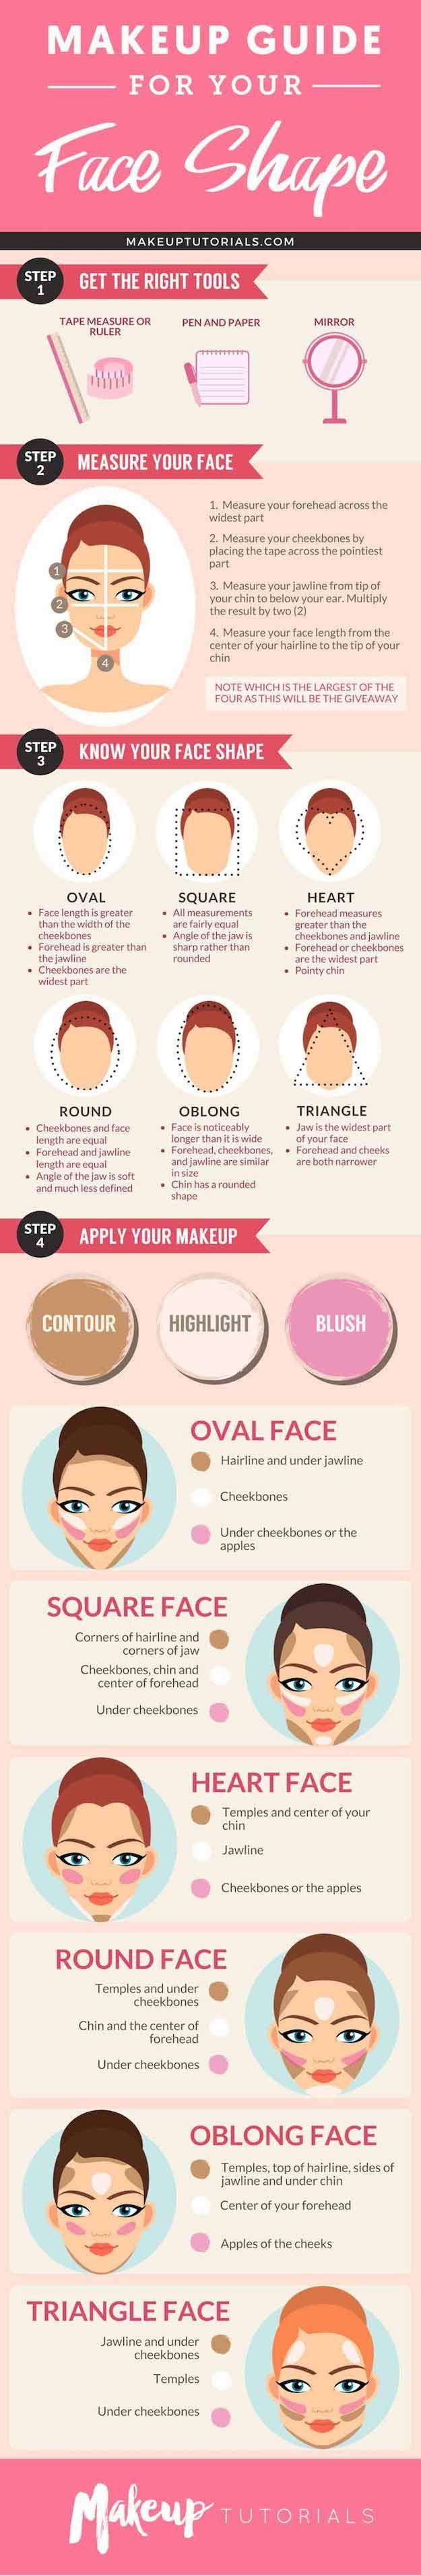 How To Determine Face Shape | Best Makeup Tutorials And Beauty Tips From The Web | Makeup Tutorials